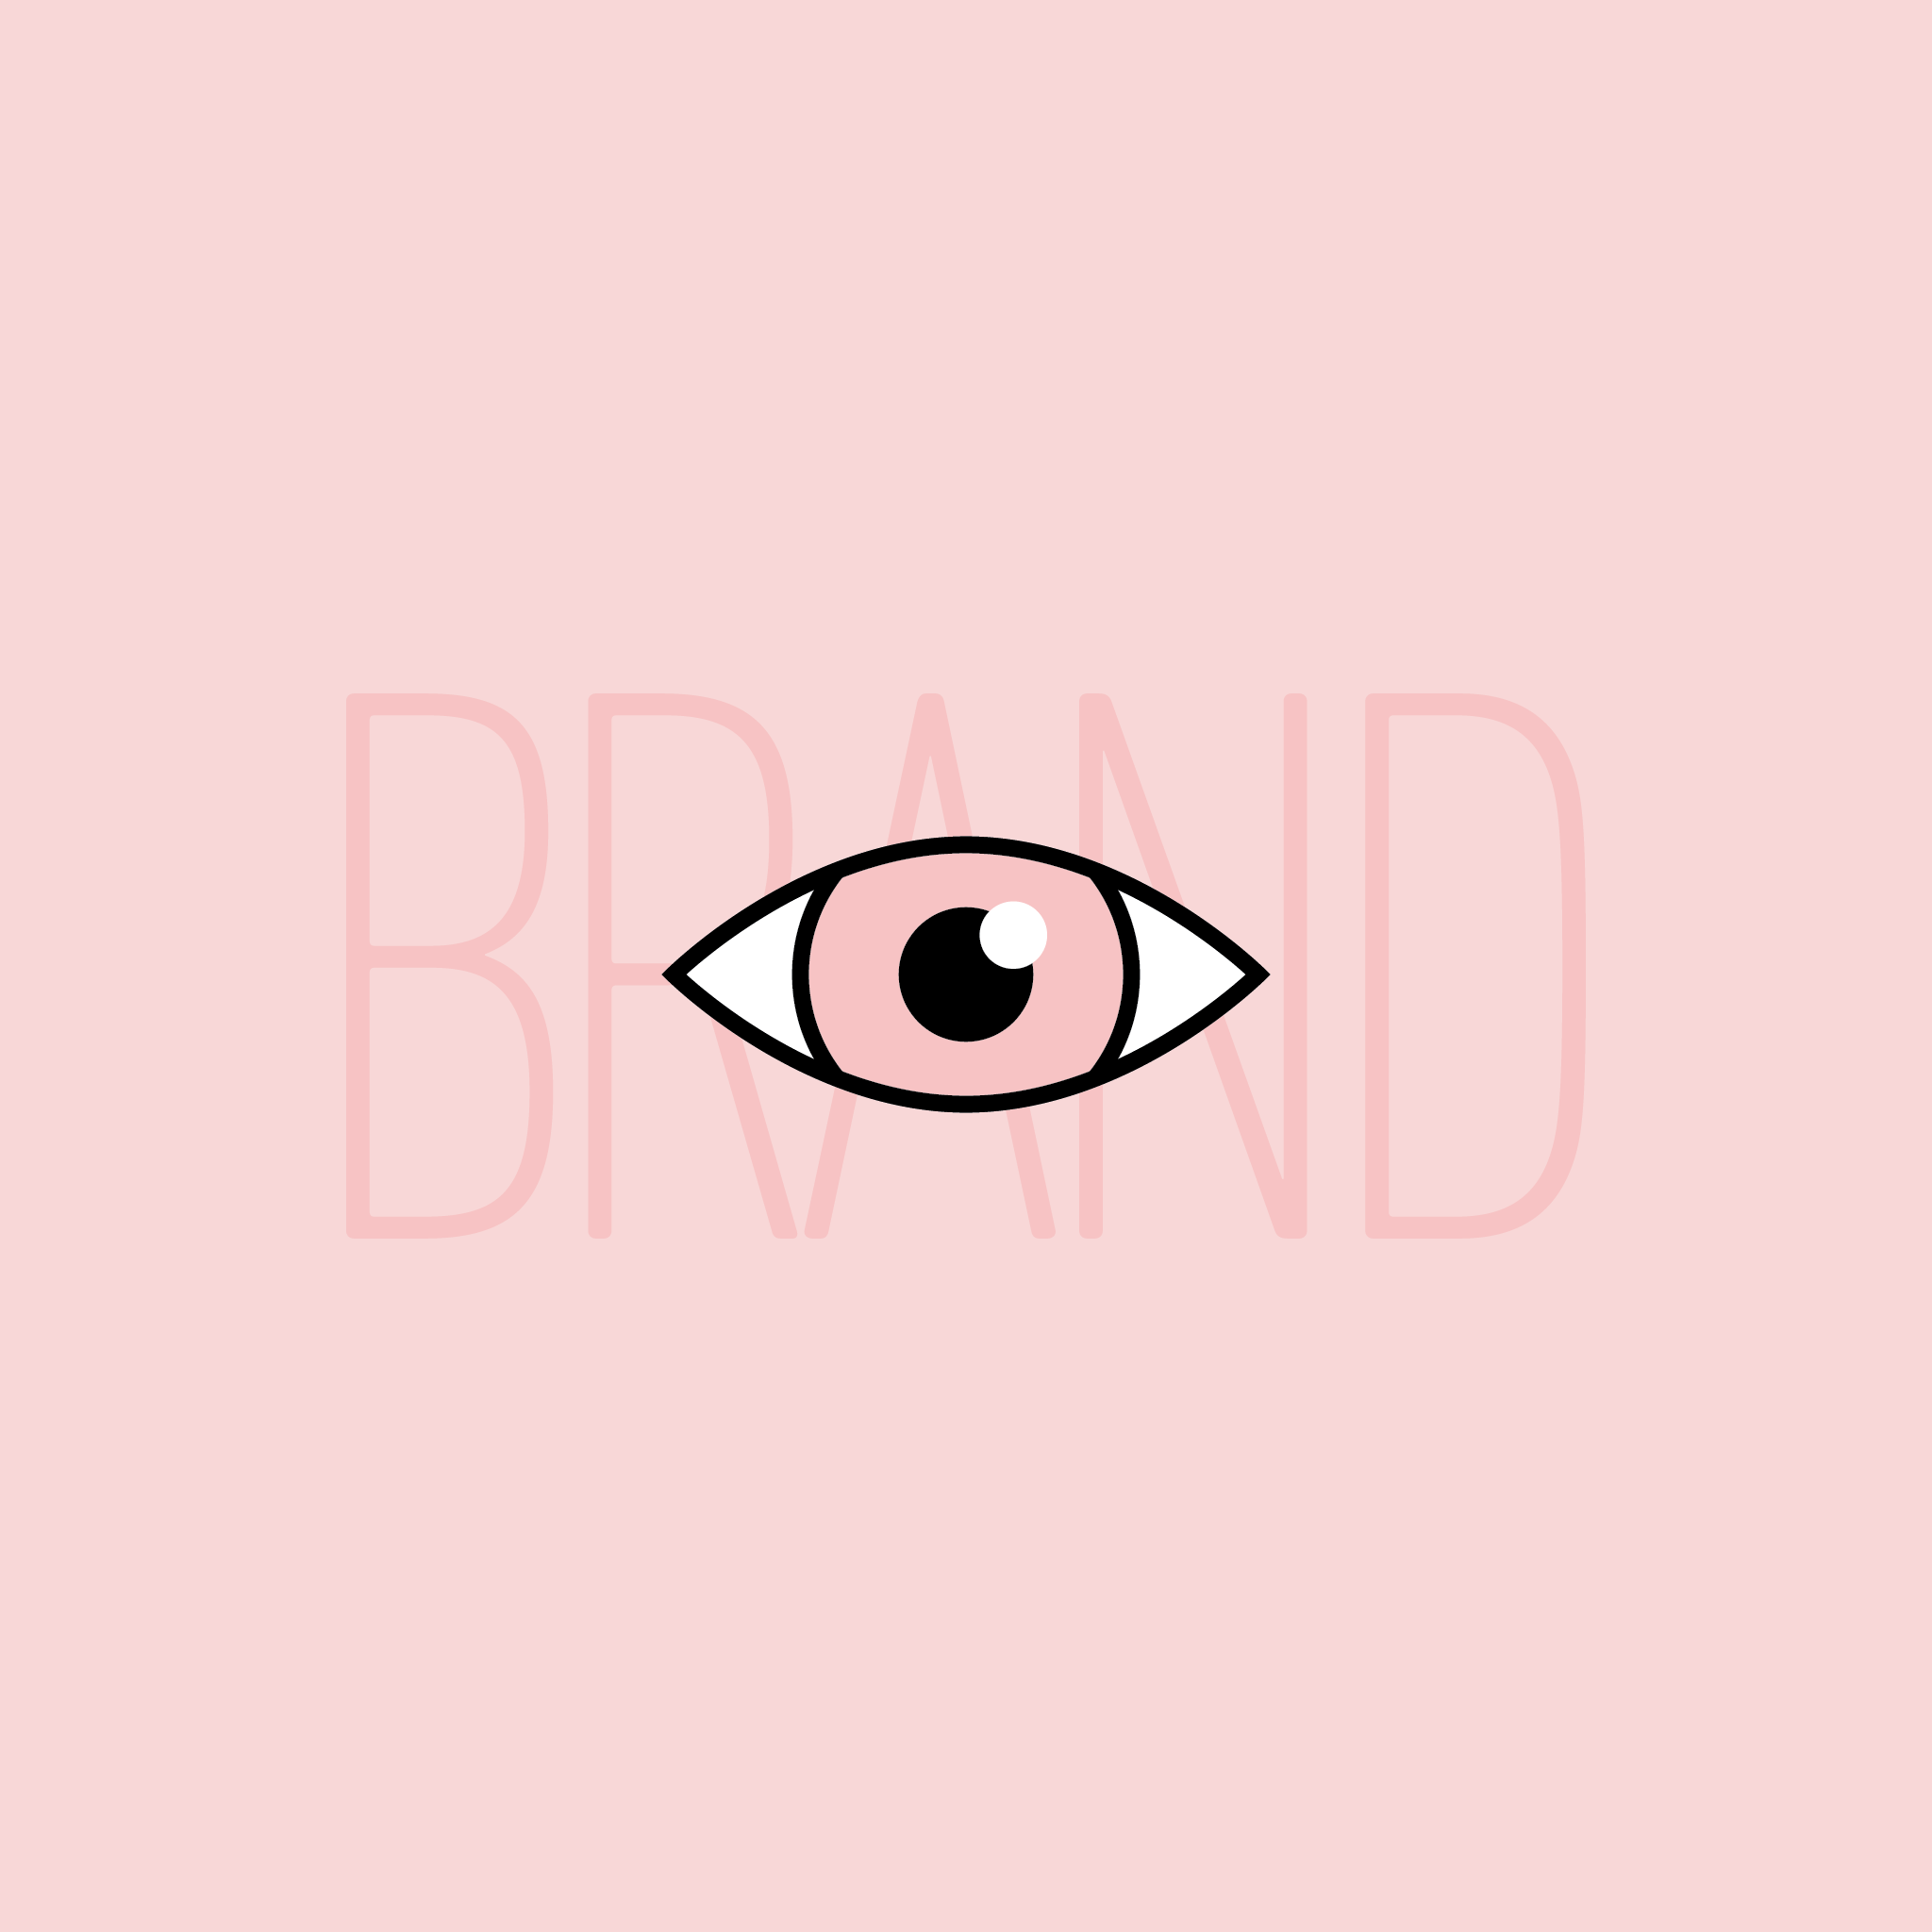 An eye over the word brand